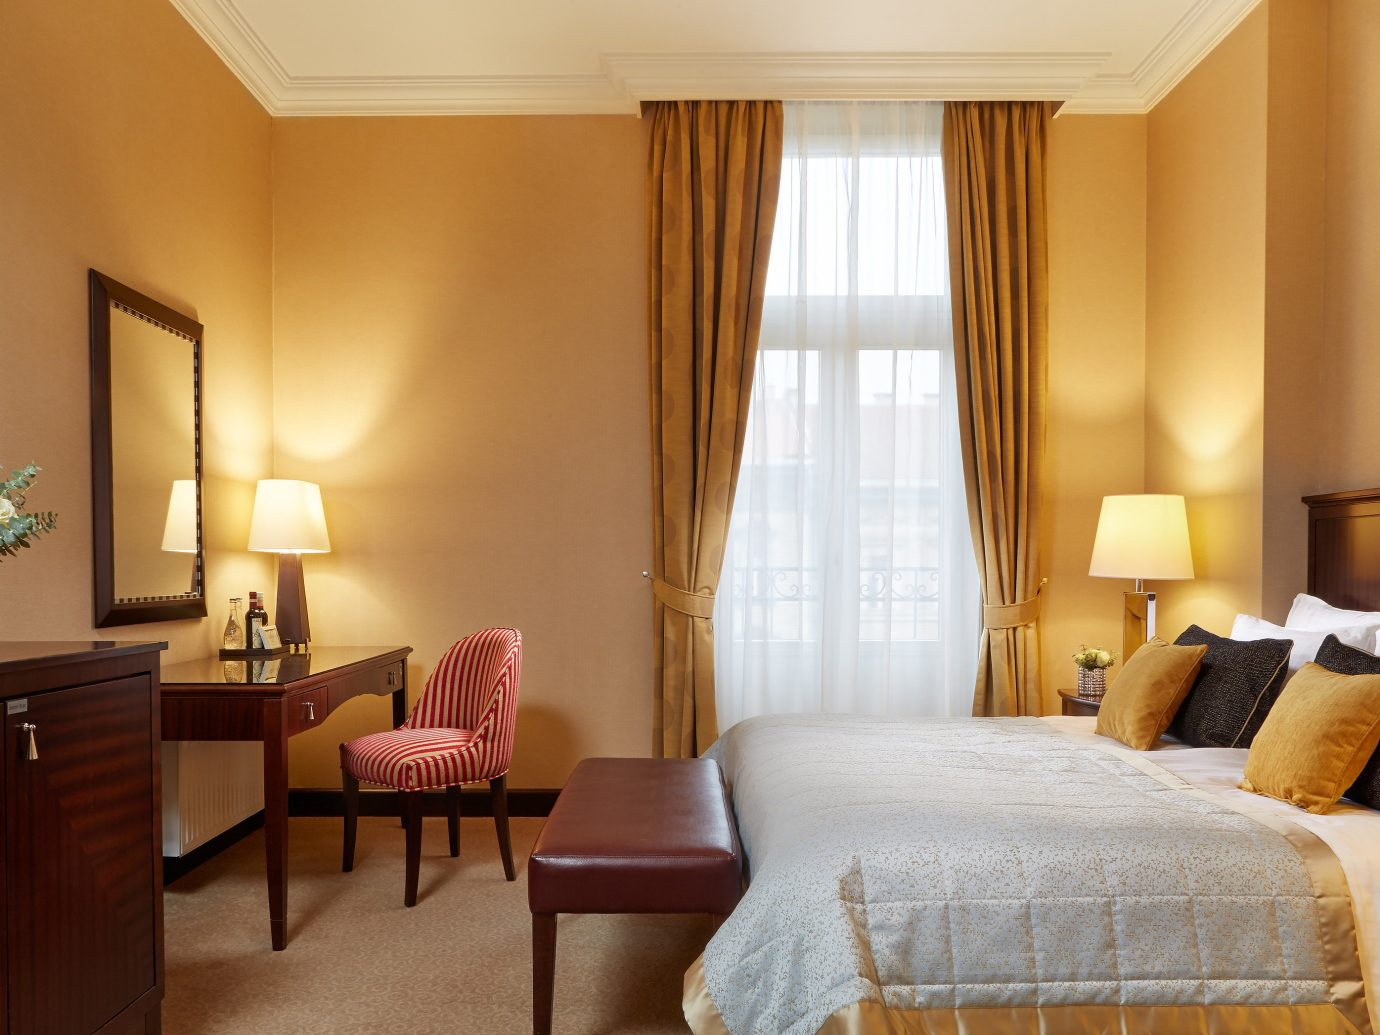 Budapest europe Hotels Hungary wall indoor floor room sofa hotel bed chair property Bedroom Suite interior design estate real estate nice cottage apartment decorated furniture